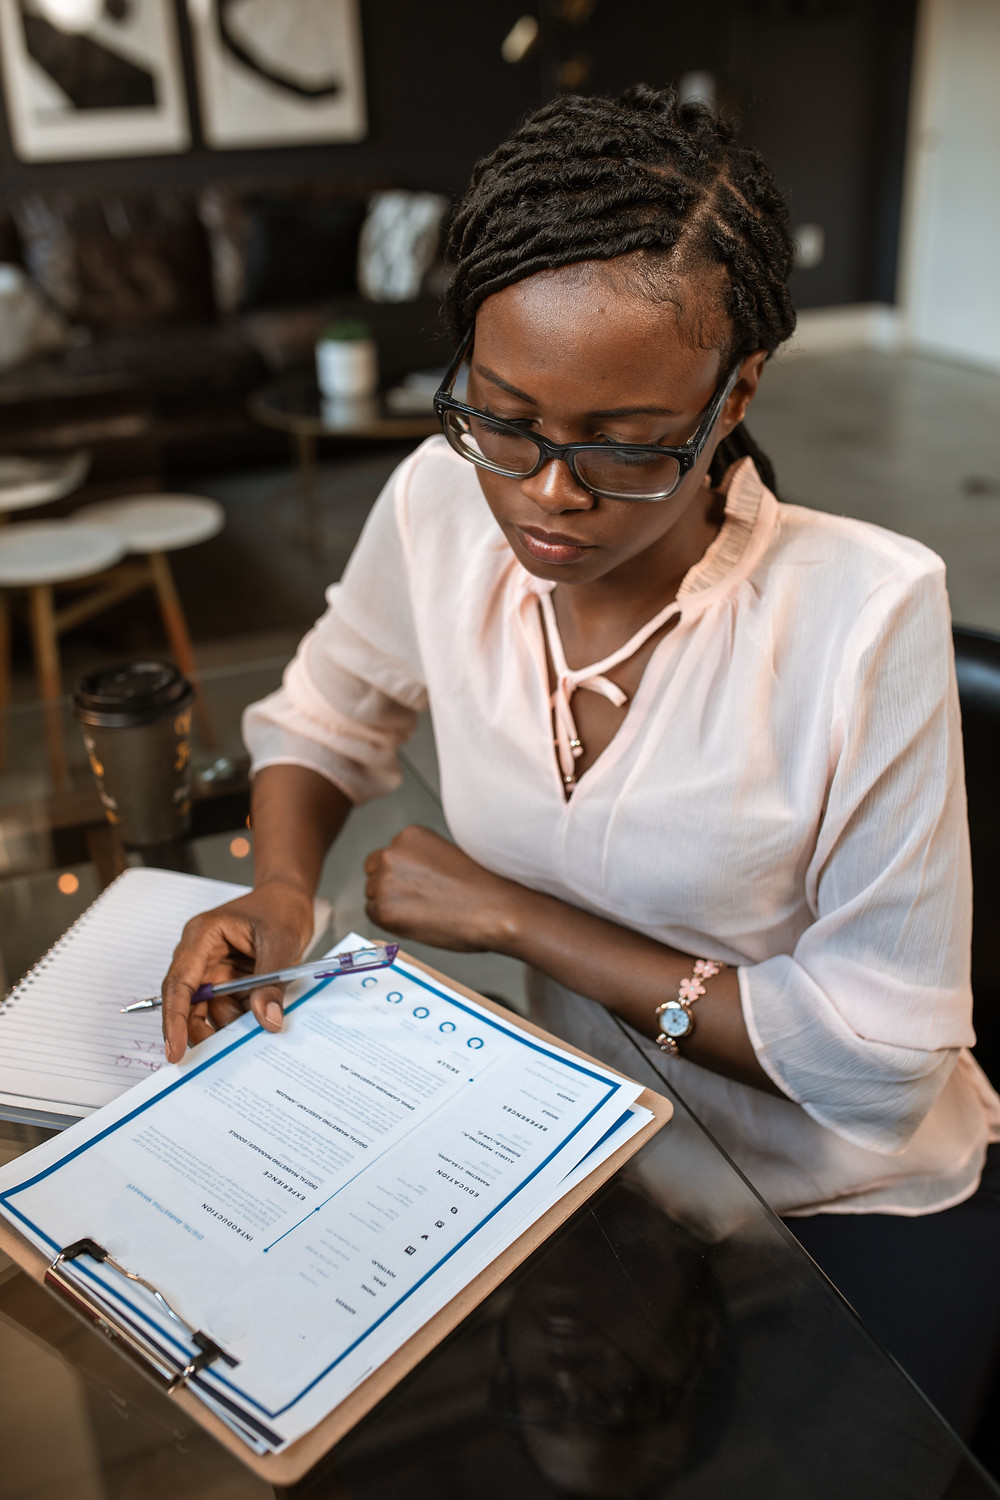 Woman wearing a light pink blouse sits in a cafe looking down at a clipboard with a resume on it. She is holding the clipboard and a pen with her right hand. She is wear glasses and has her hair pulled back into a low ponytail. There are tables, chairs, and wall art behind her.